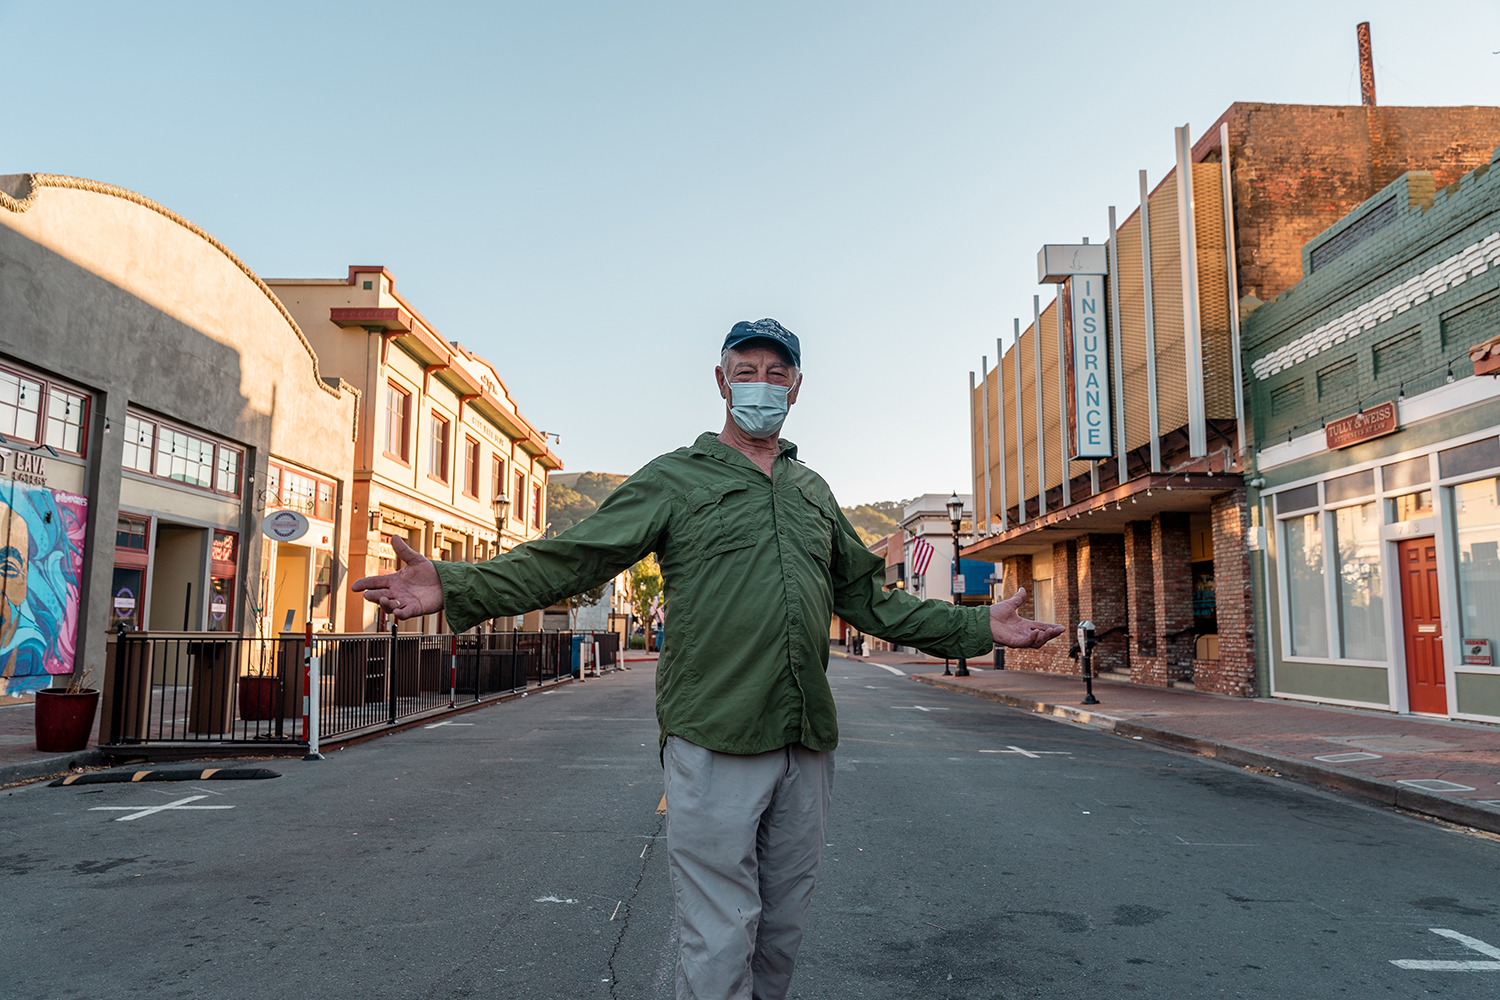 Long-time Martinez resident Ken King poses for a photo in the deserted downtown in Martinez, Calif., on Sunday, July 12, 2020.